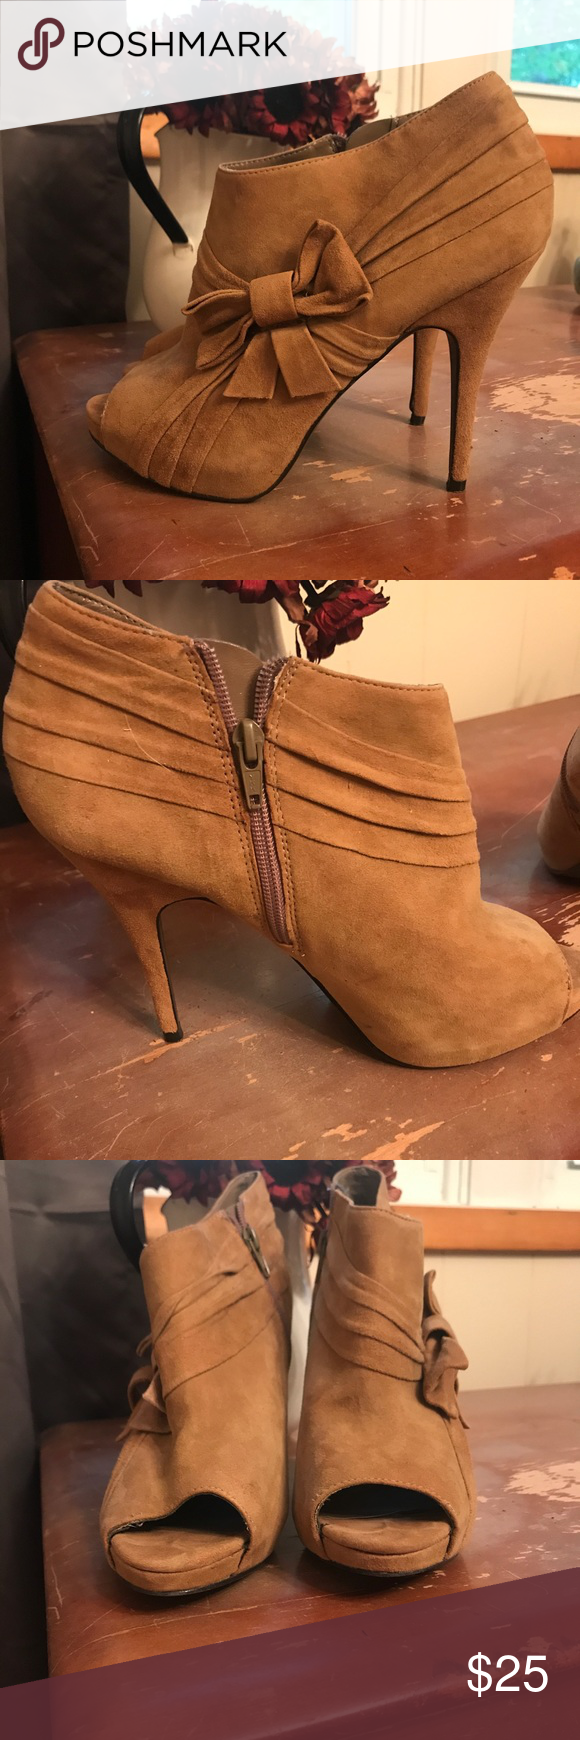 ALDO Boots Open toe, high heeled booties. Size 40. (US size 10). Bought a few years ago and only worn twice. Feel free to make an offer! ALDO Shoes Ankle Boots & Booties